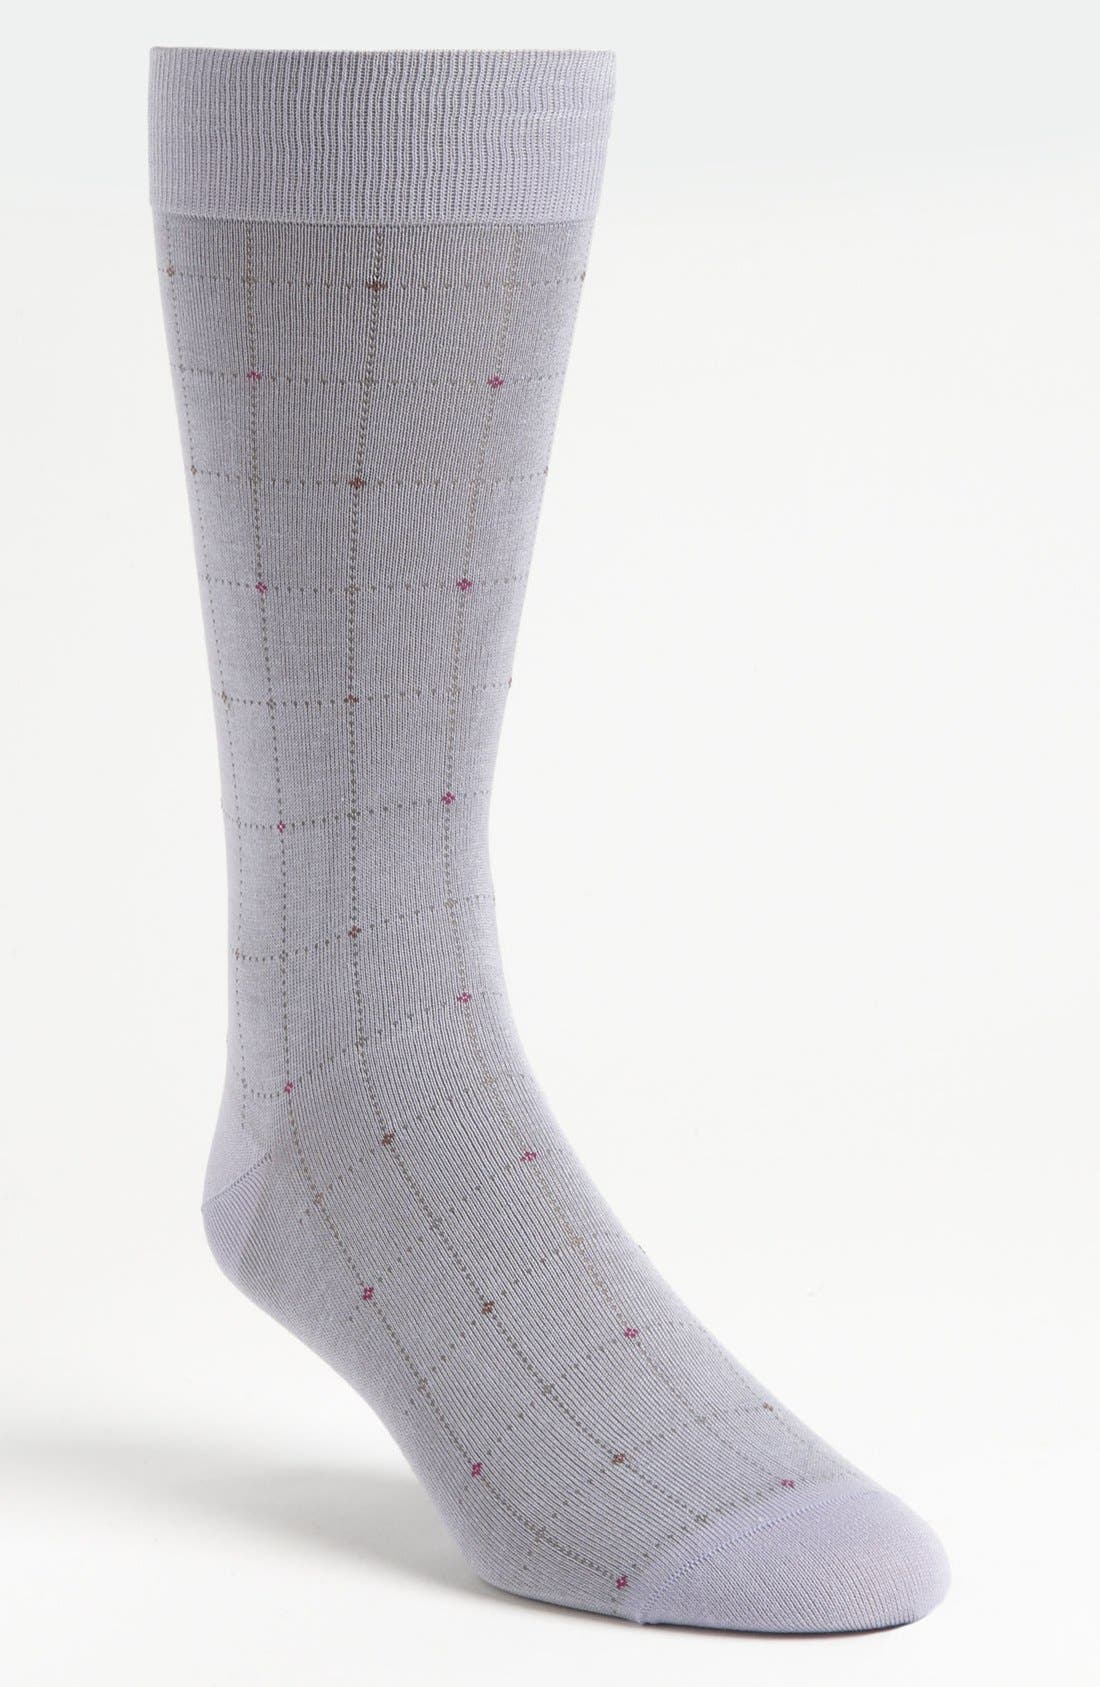 Main Image - Pantherella 'Pall Mall' Socks